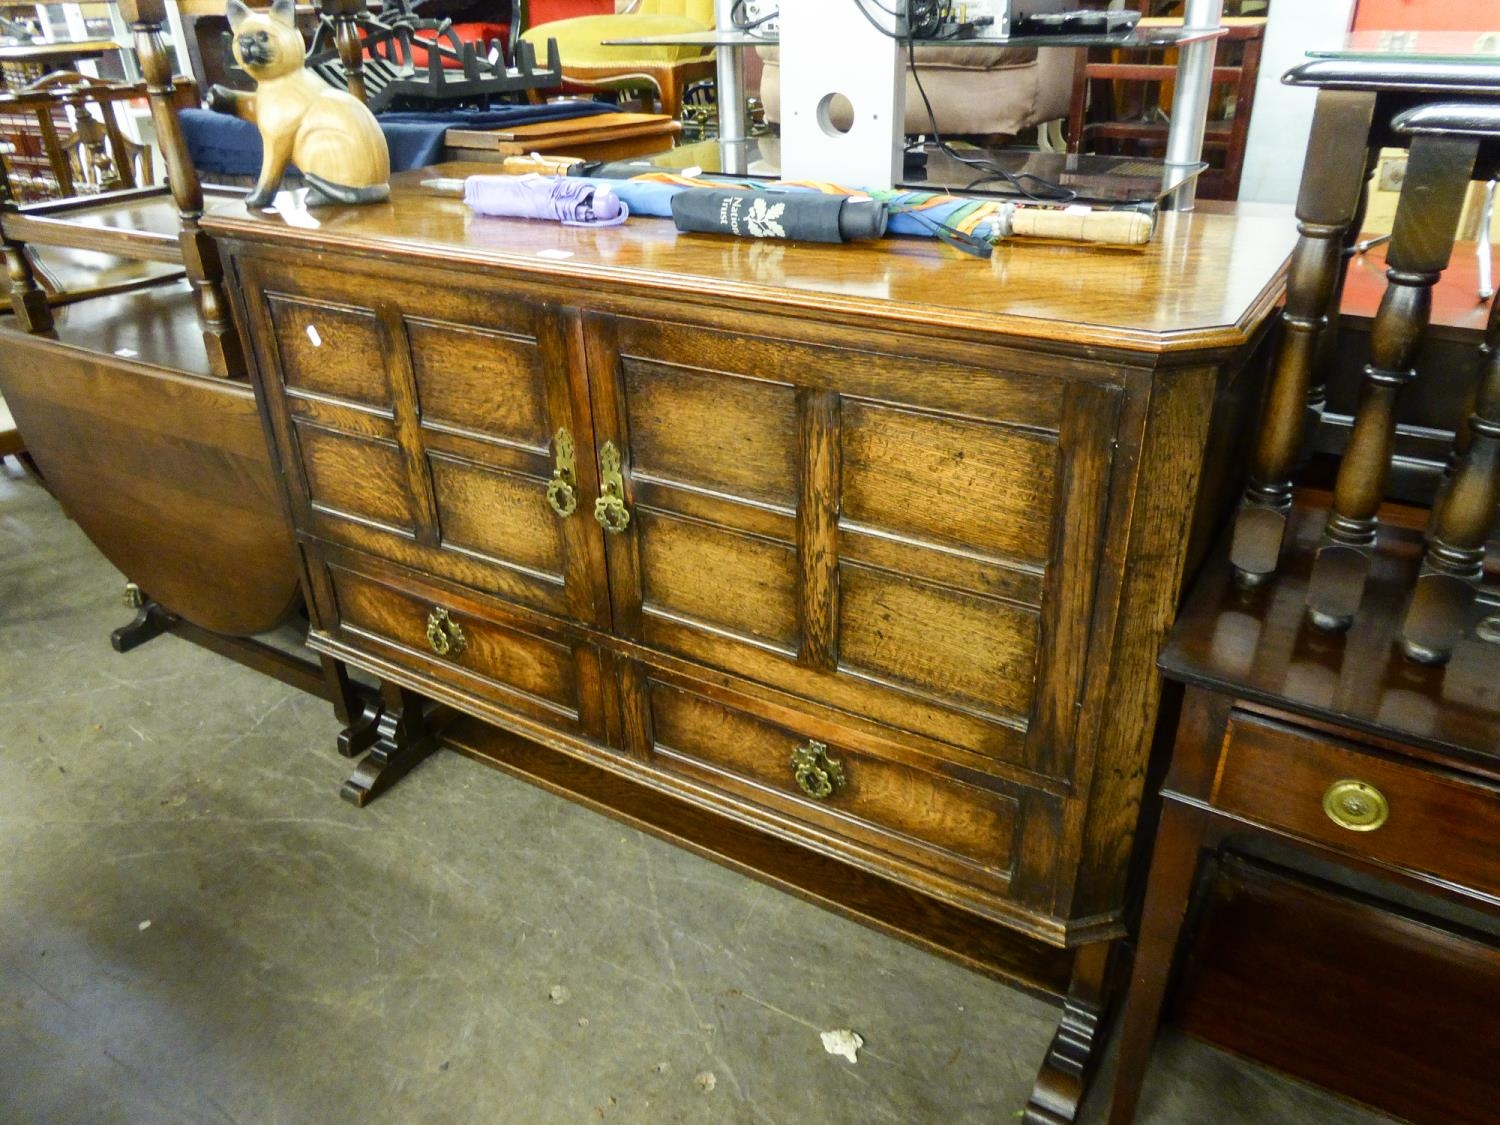 ?THOROGOOD FURNITURE?, BATH CABINET MAKERS (BMC), 17TH CENTURY STYLE OAK SIDEBOARD, WITH TWO